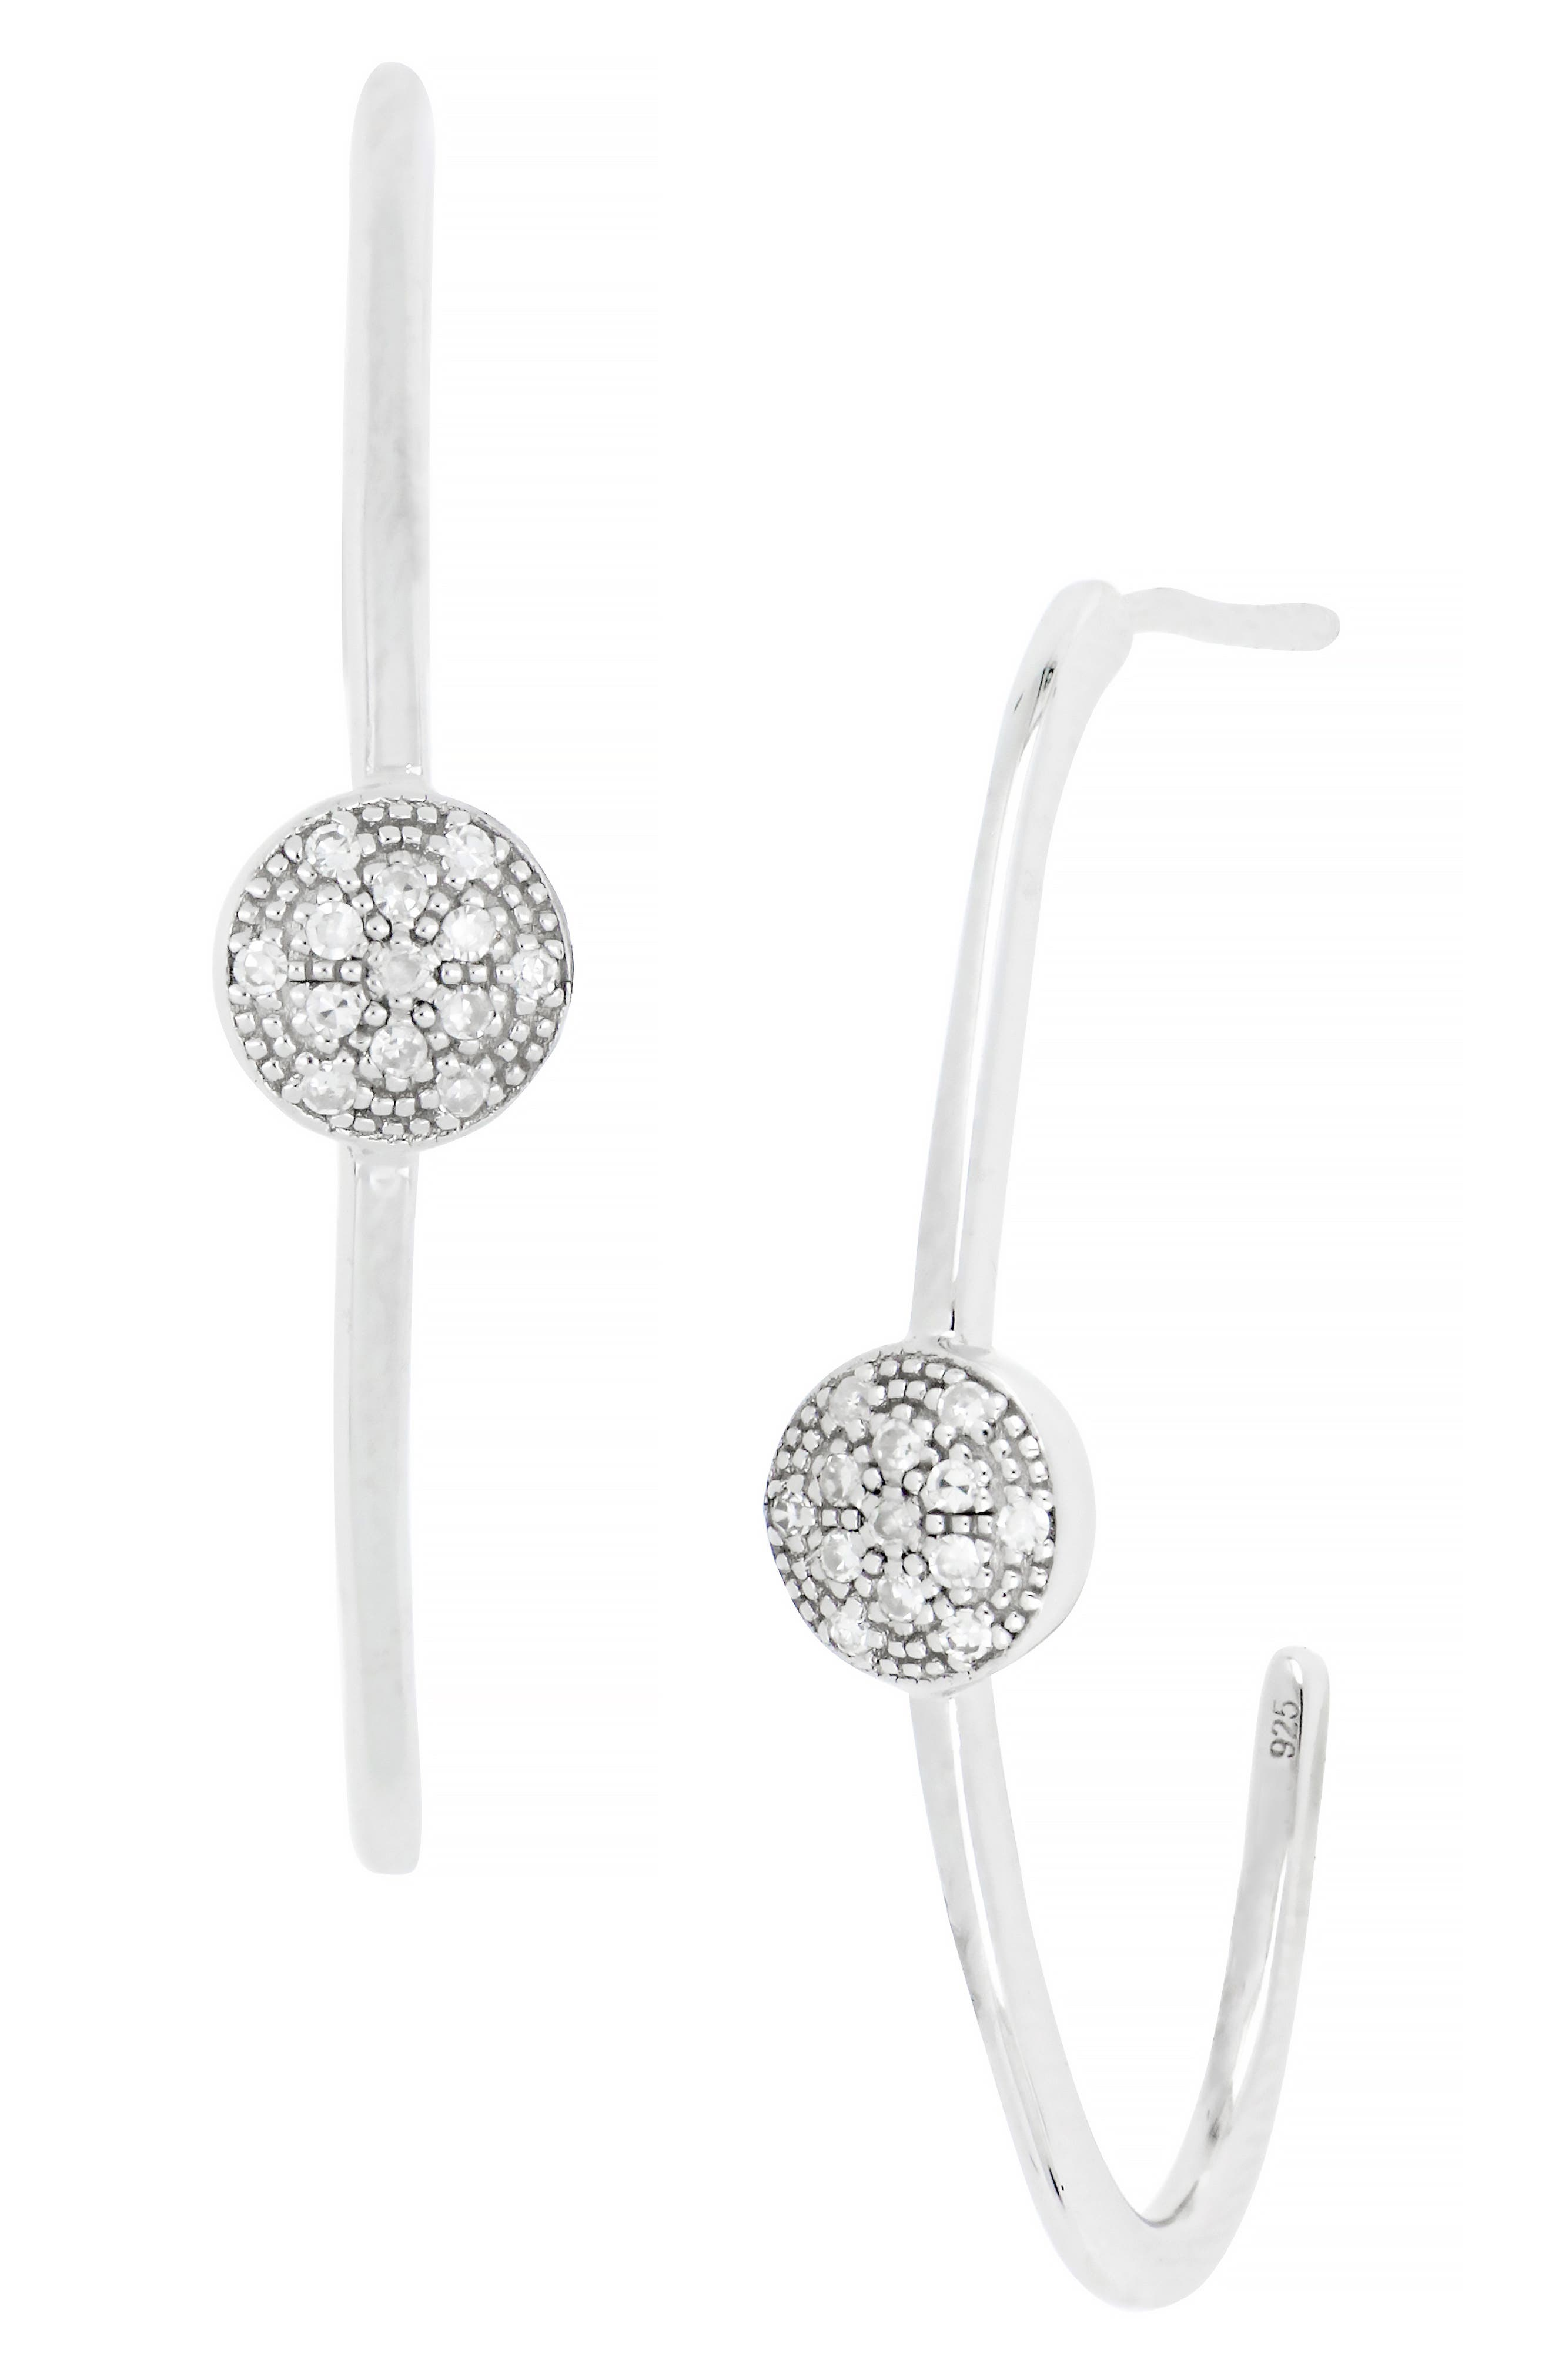 Image of Carriere Sterling Silver Pave Diamond Circle 18mm Hoop Earrings - 0.08 ctw